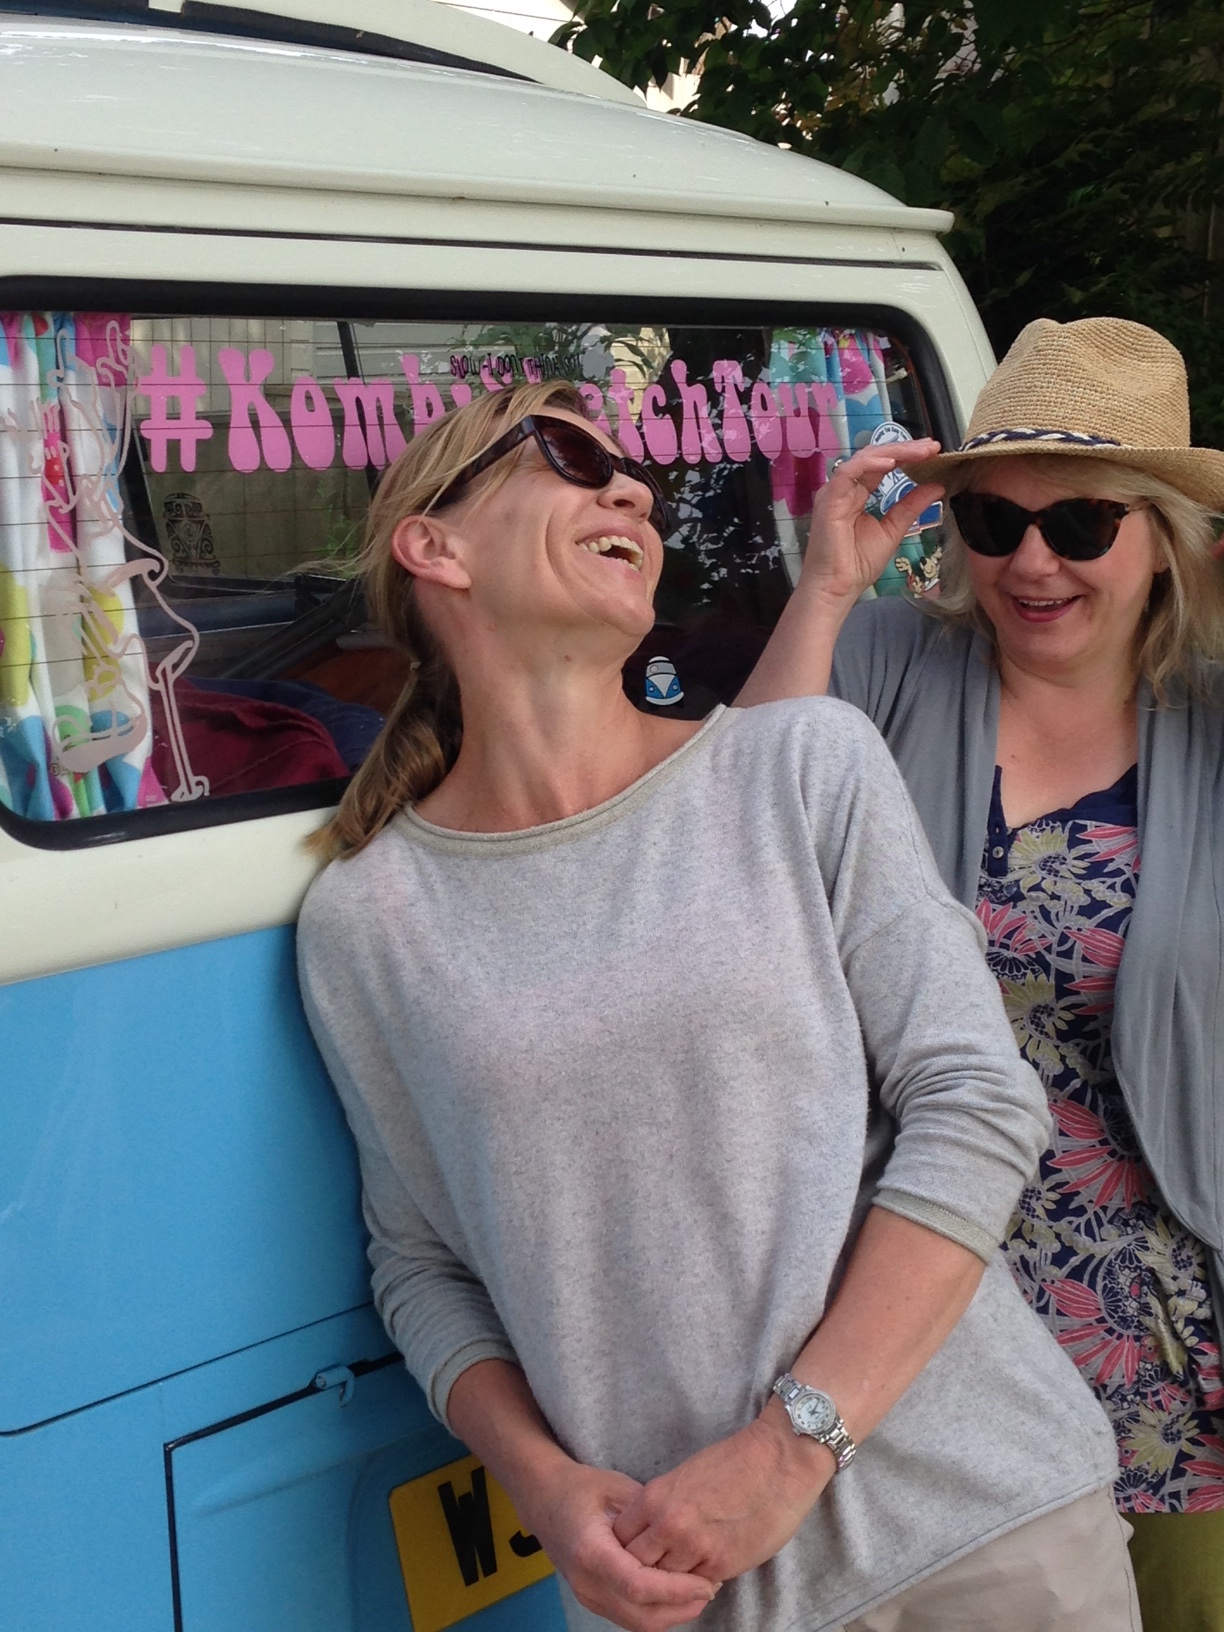 Maxine and Jane laughing by the van